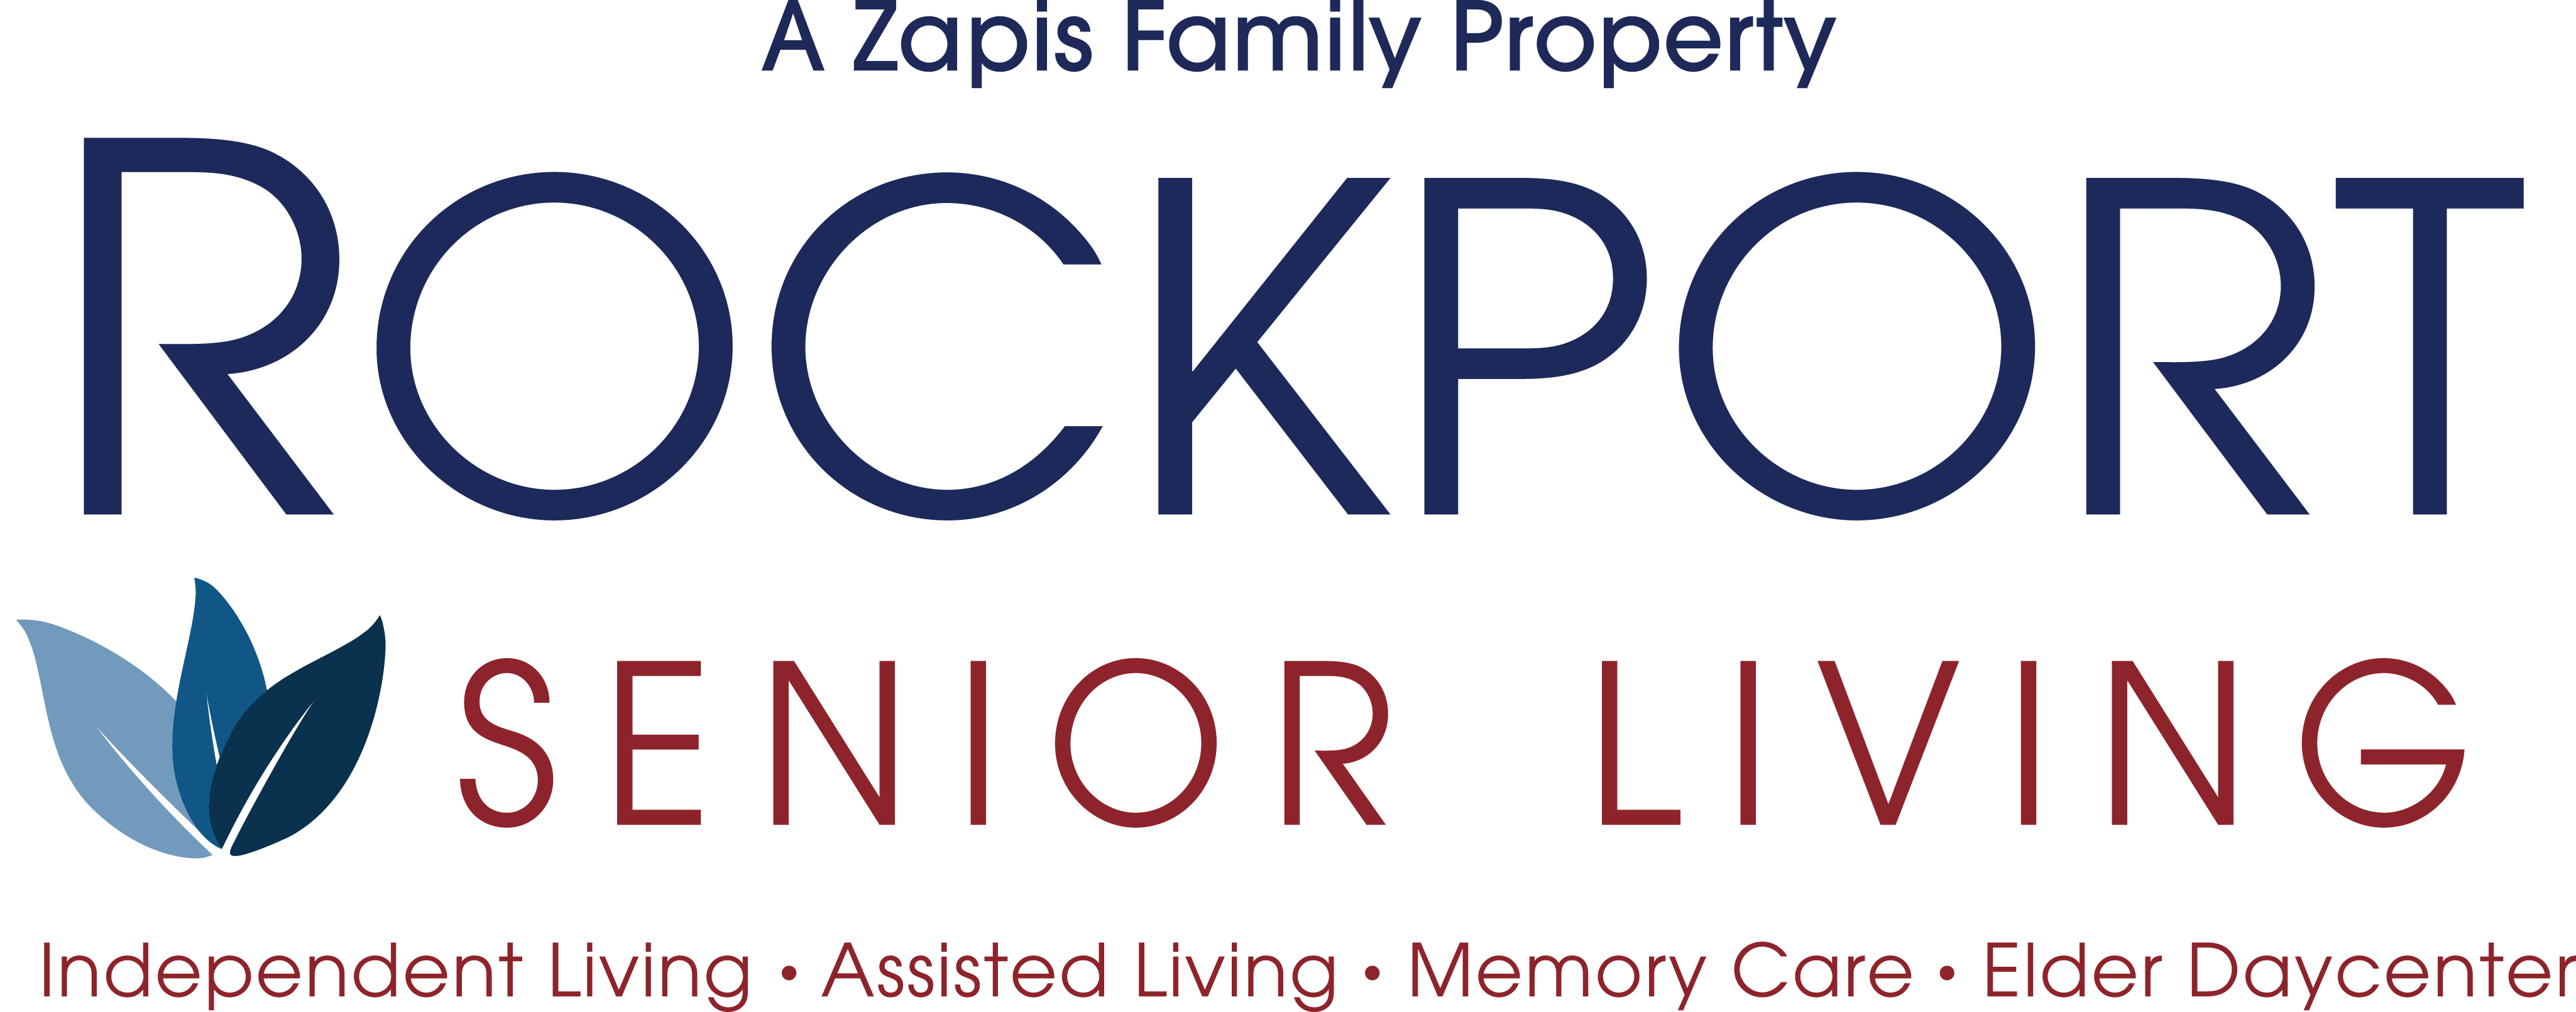 Rockport Senior Living